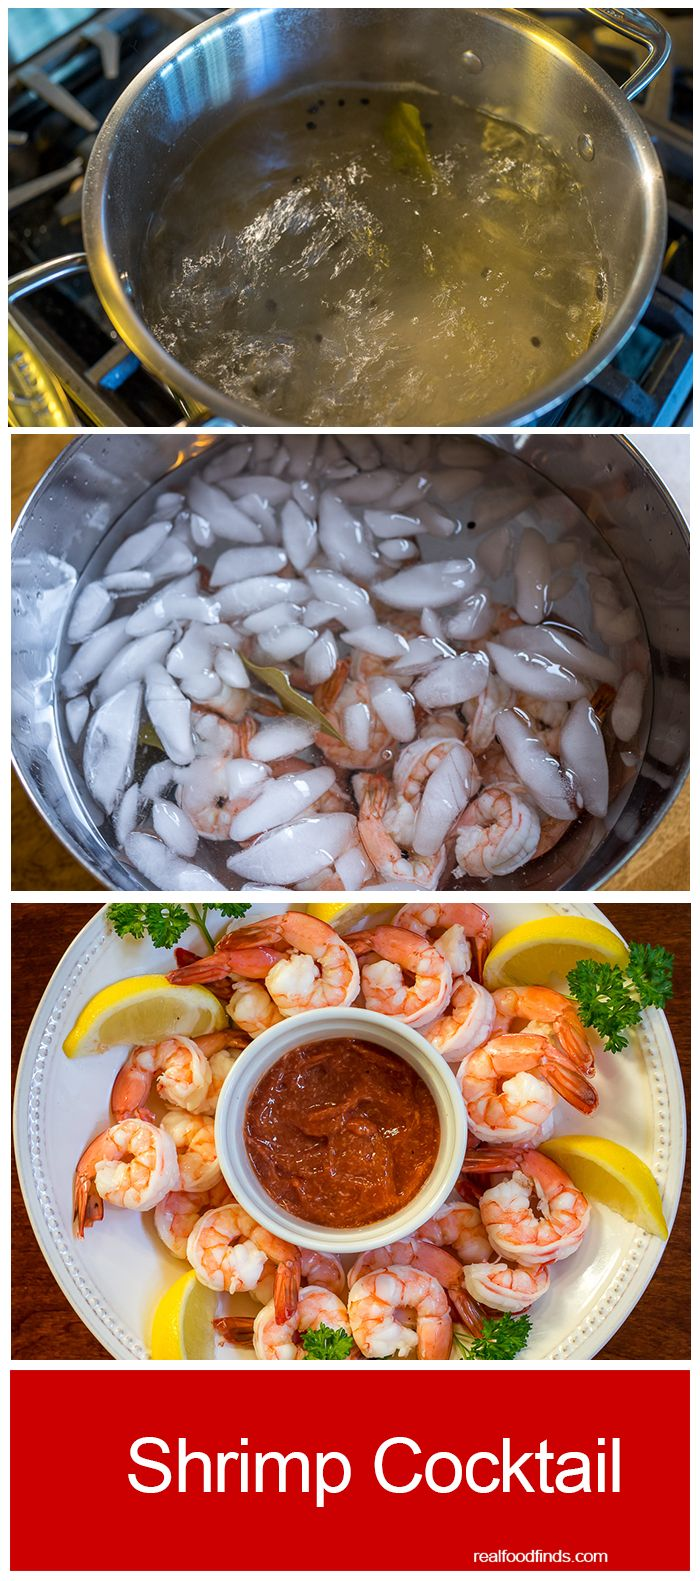 Shrimp Cocktail - RealFoodFinds.com